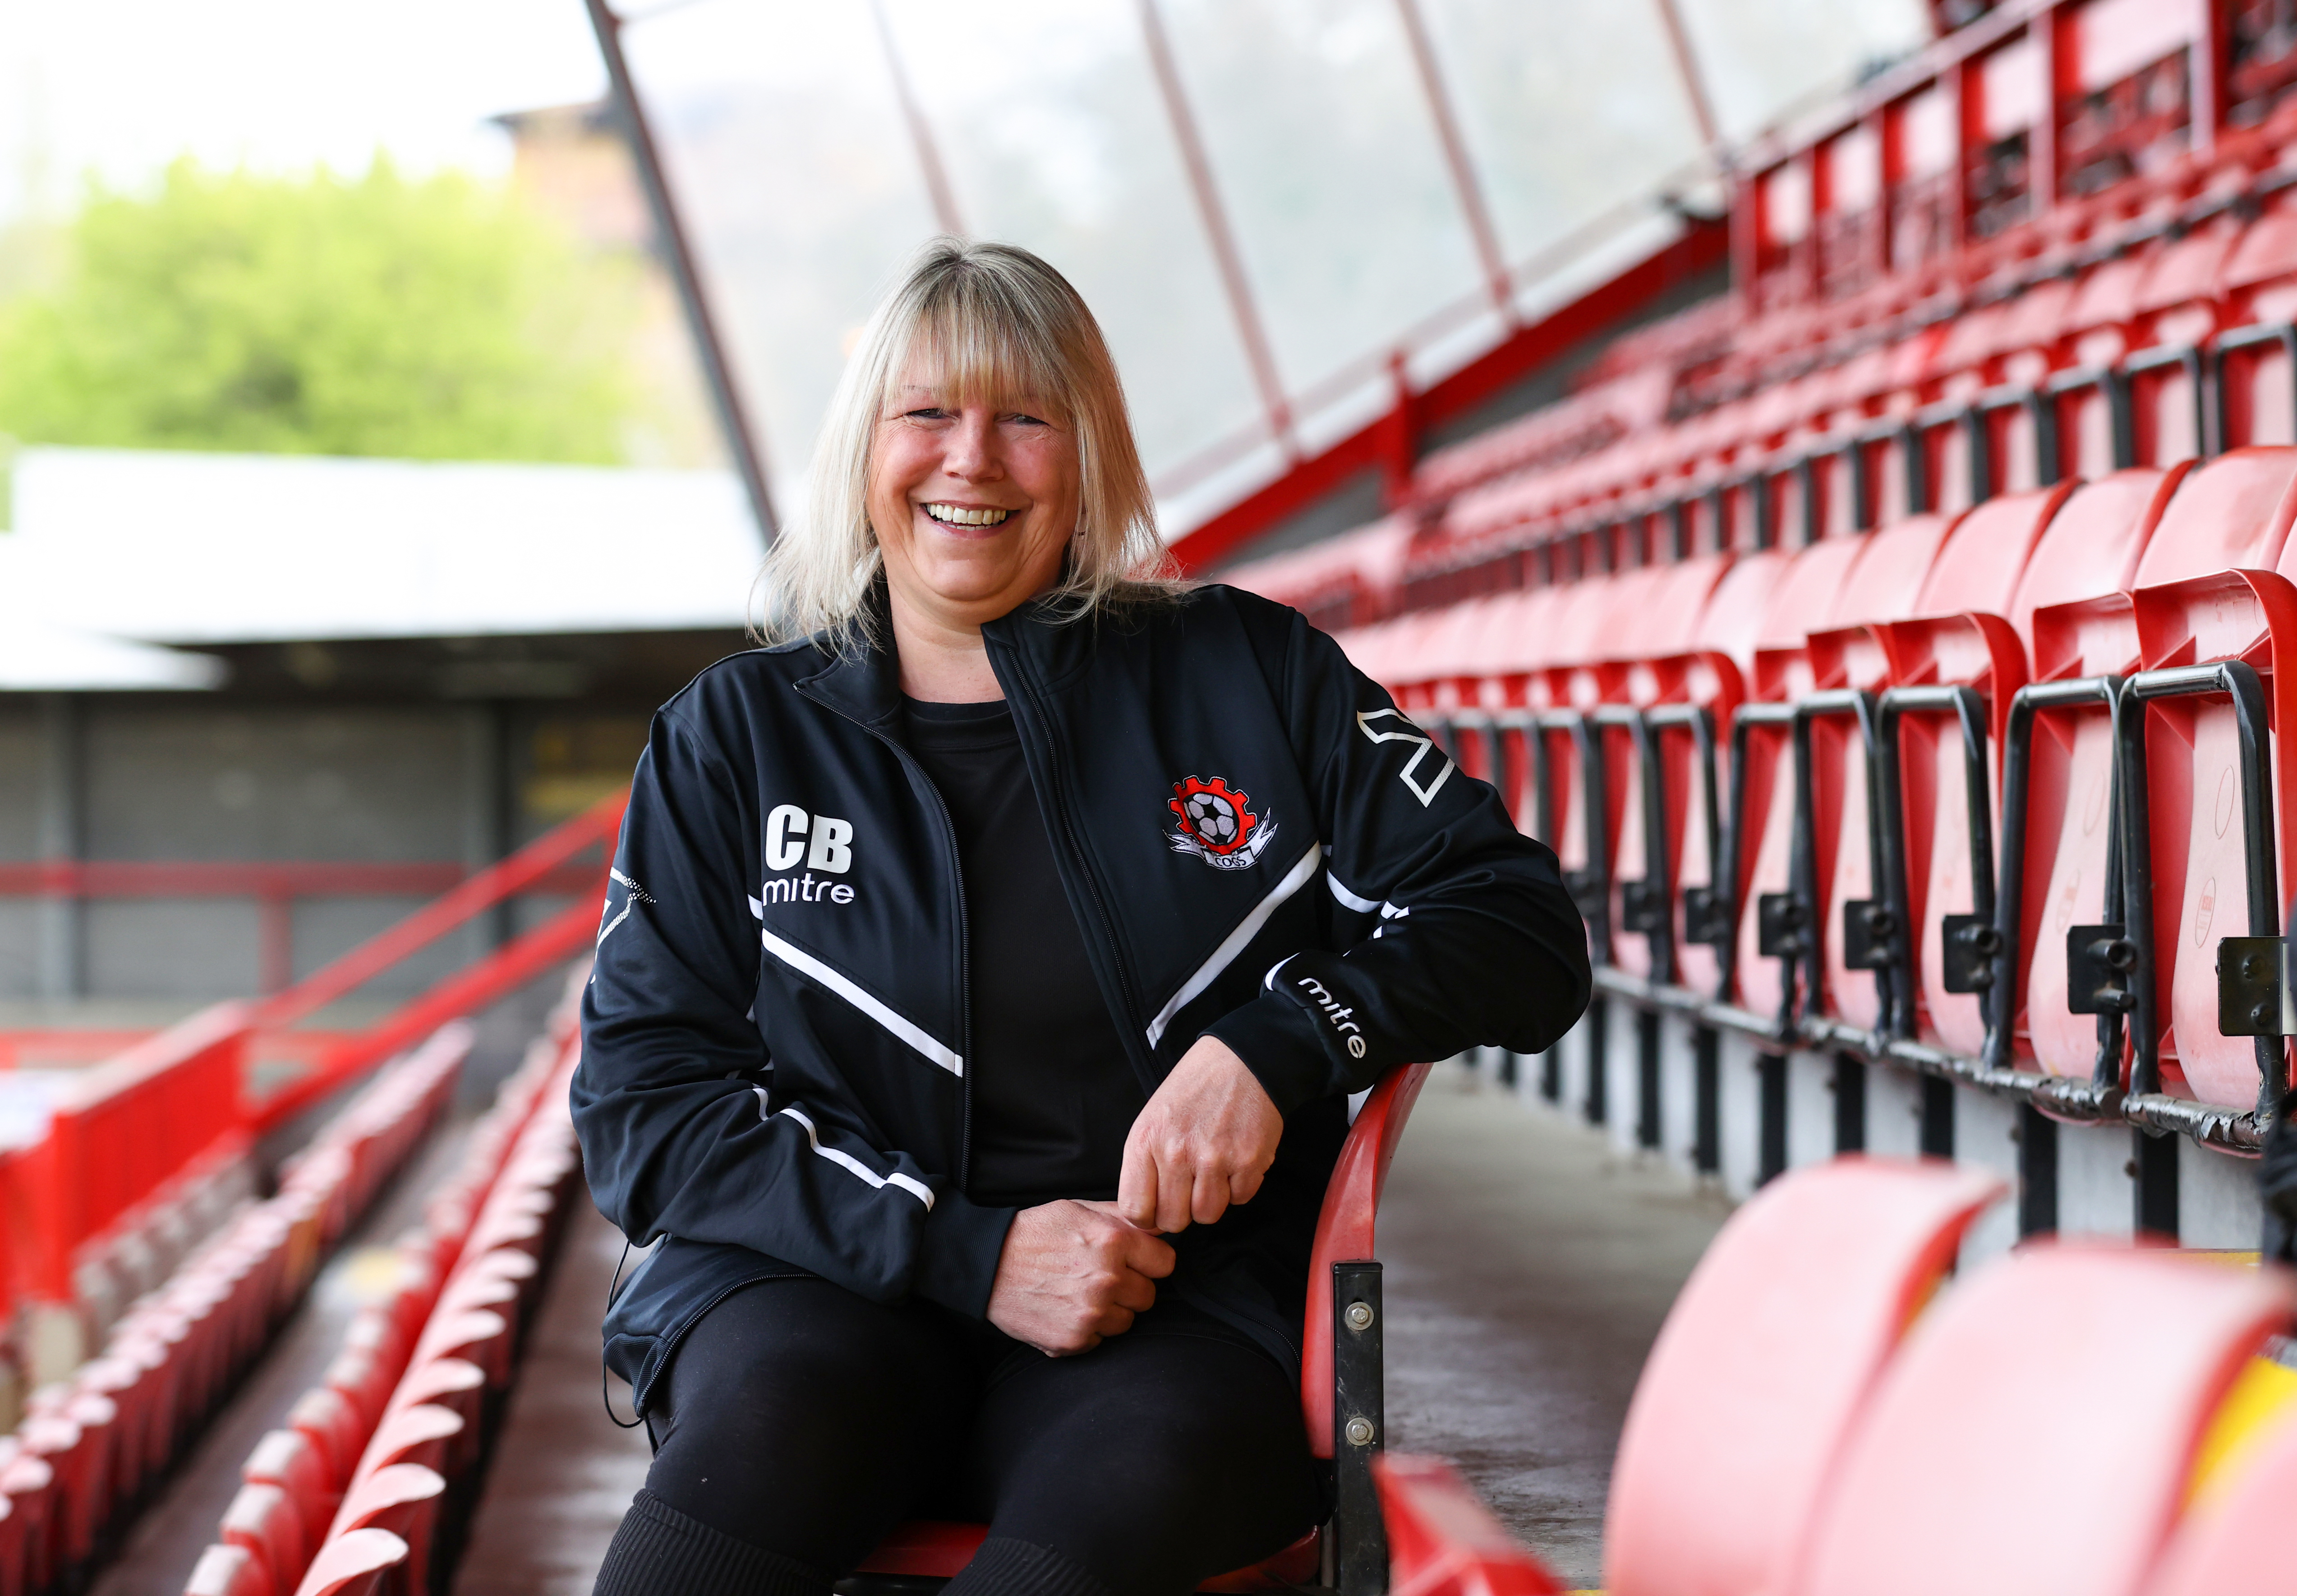 smiling woman sitting in football stands